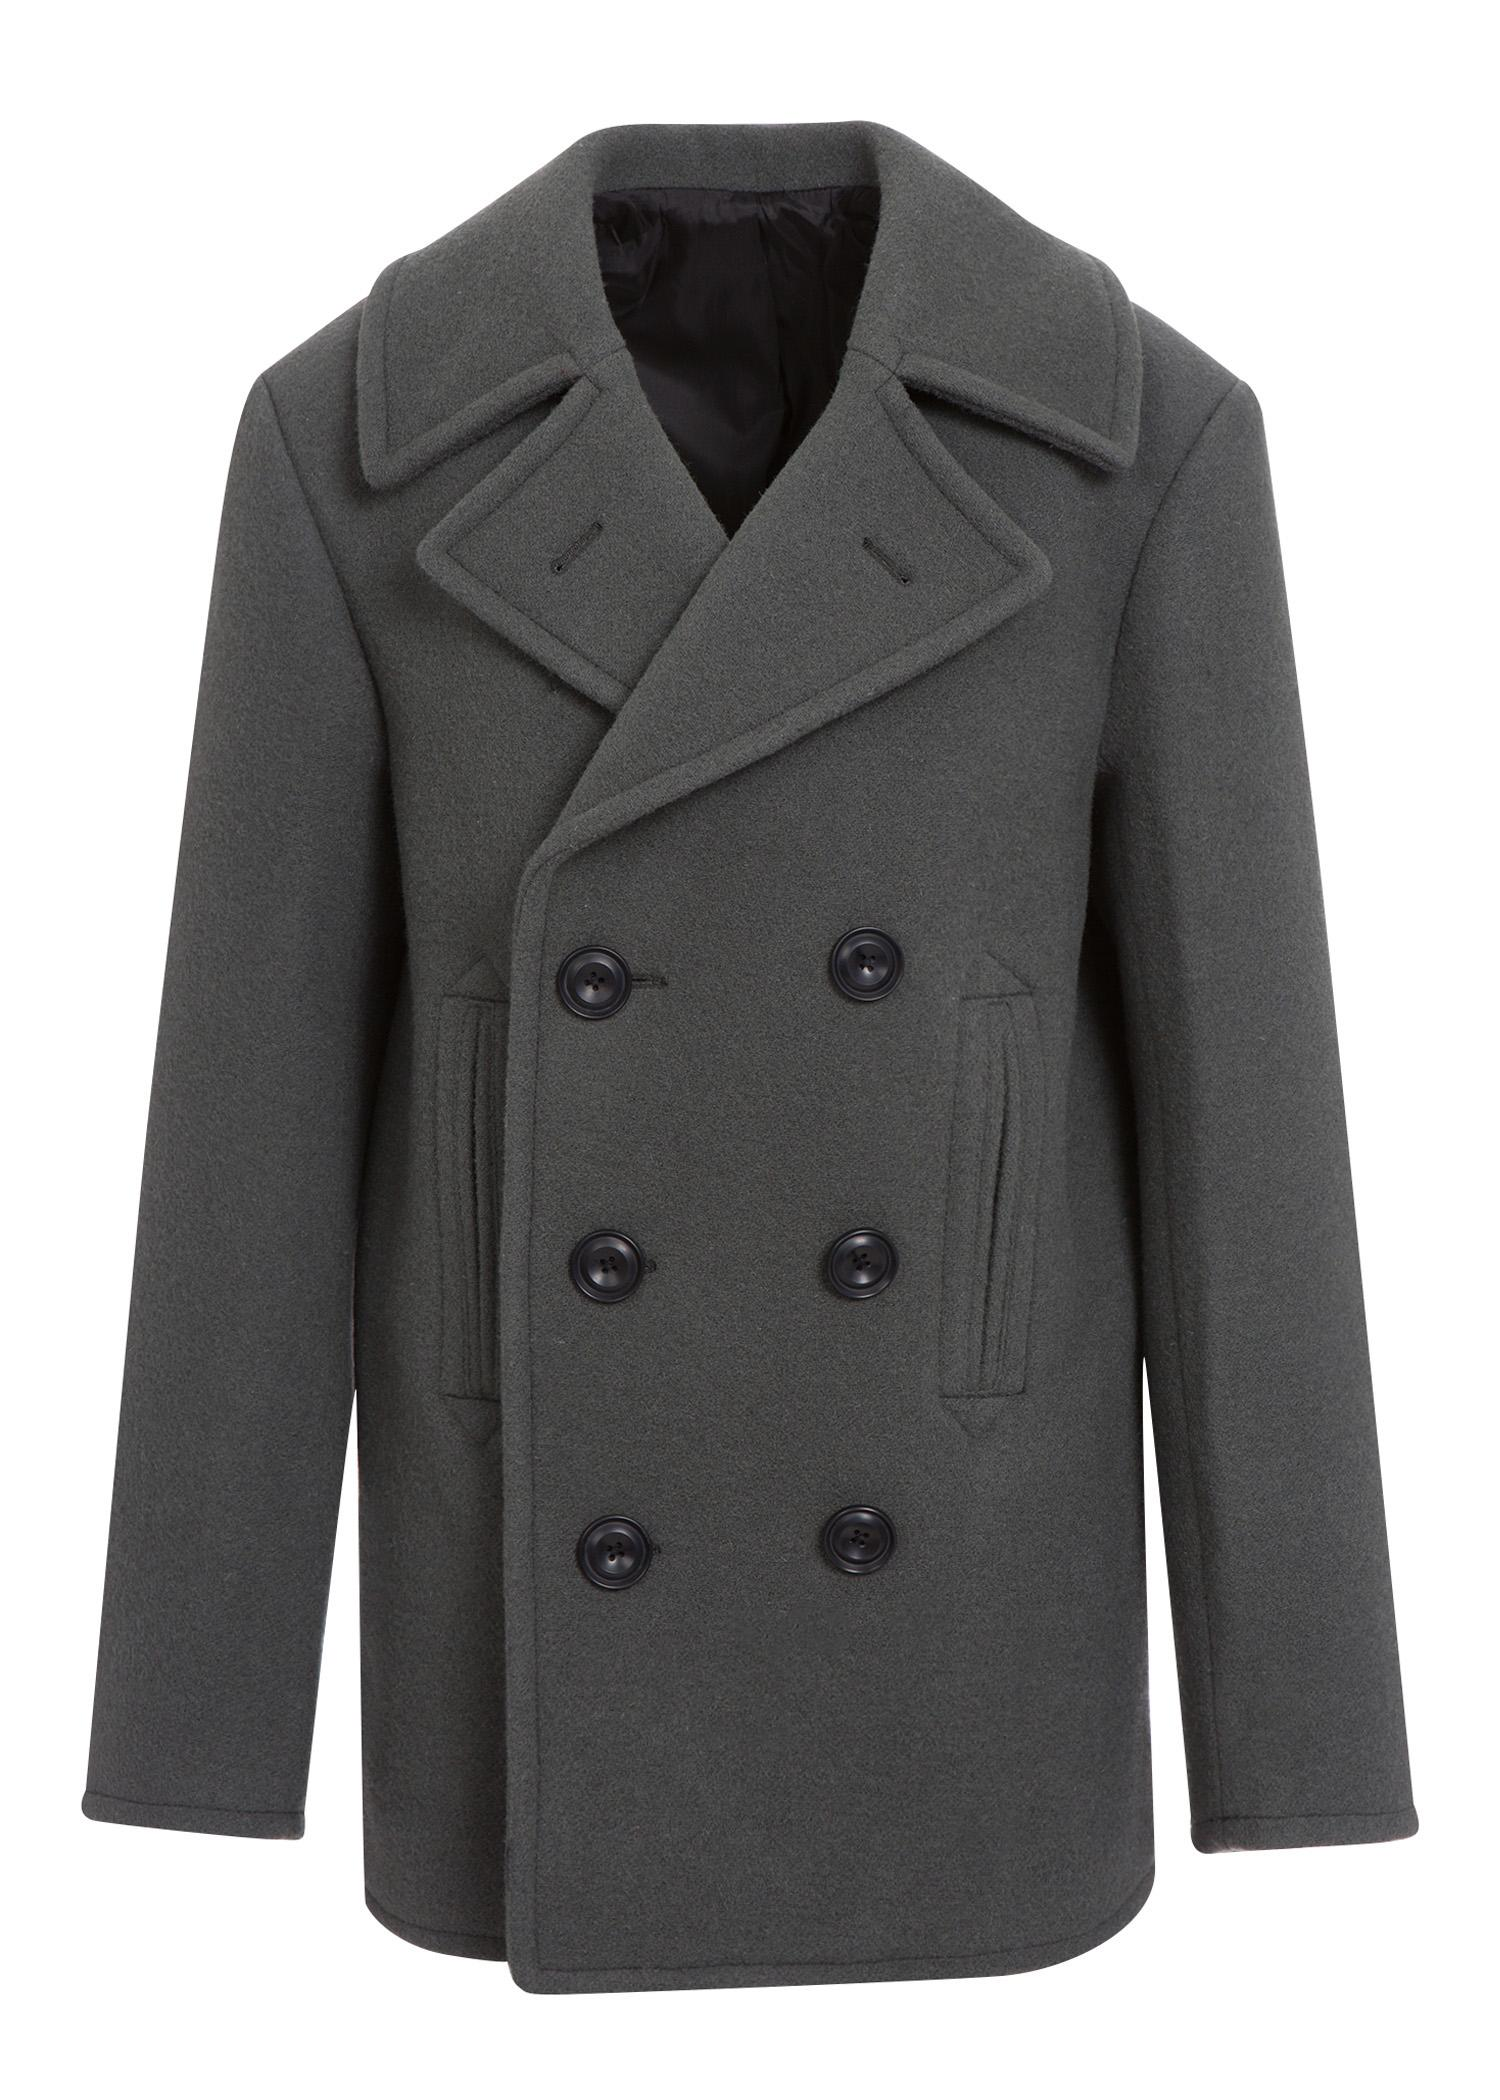 Lemaire Caban Wool Peacoat In Anthracite